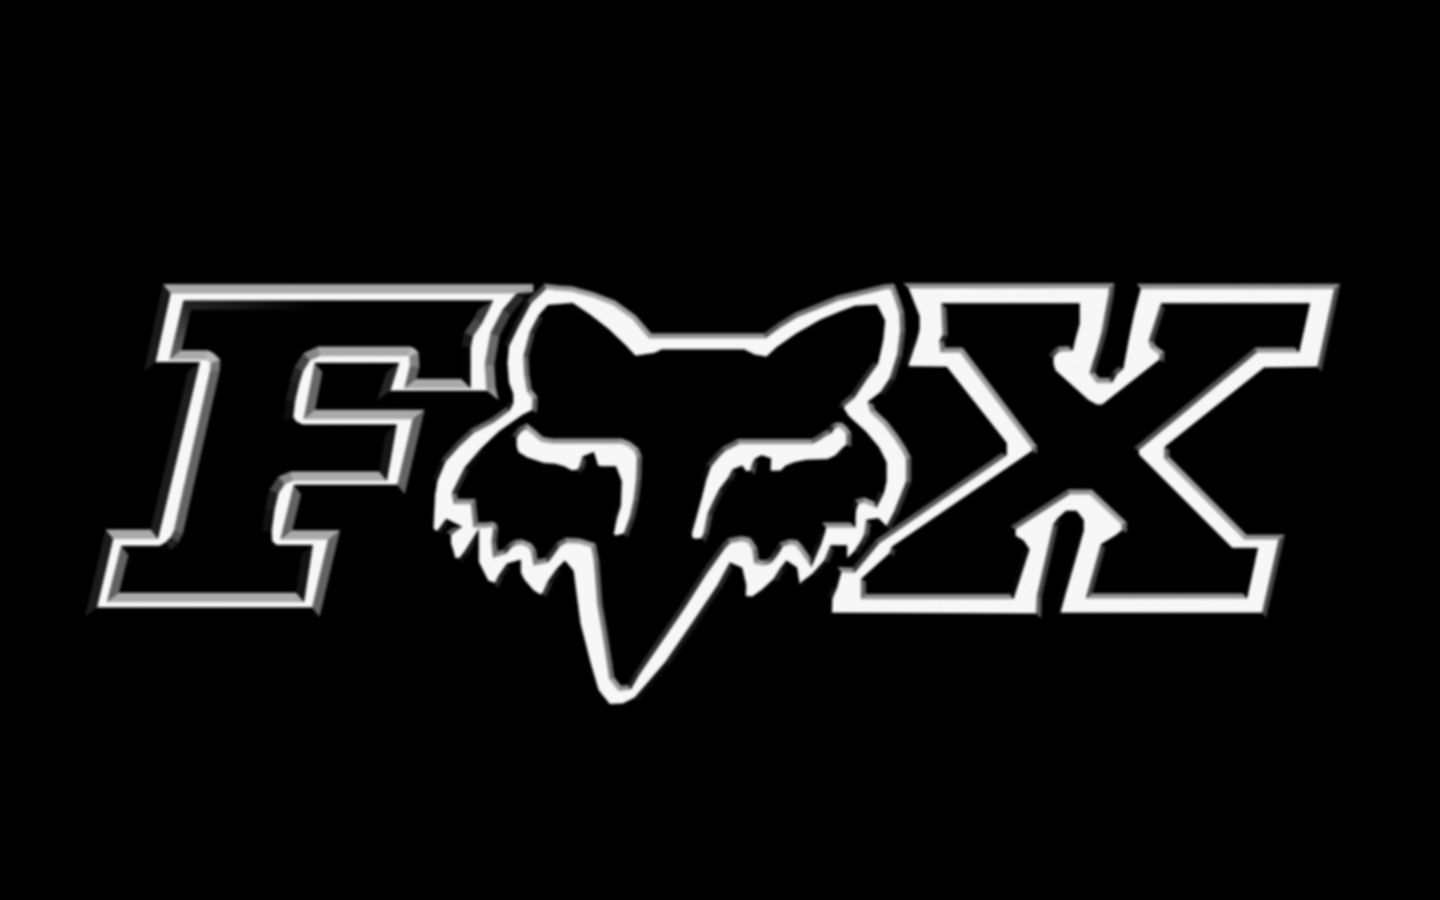 Fox Logo Wallpaper 5247 Hd Wallpapers in Logos   Imagescicom 1440x900